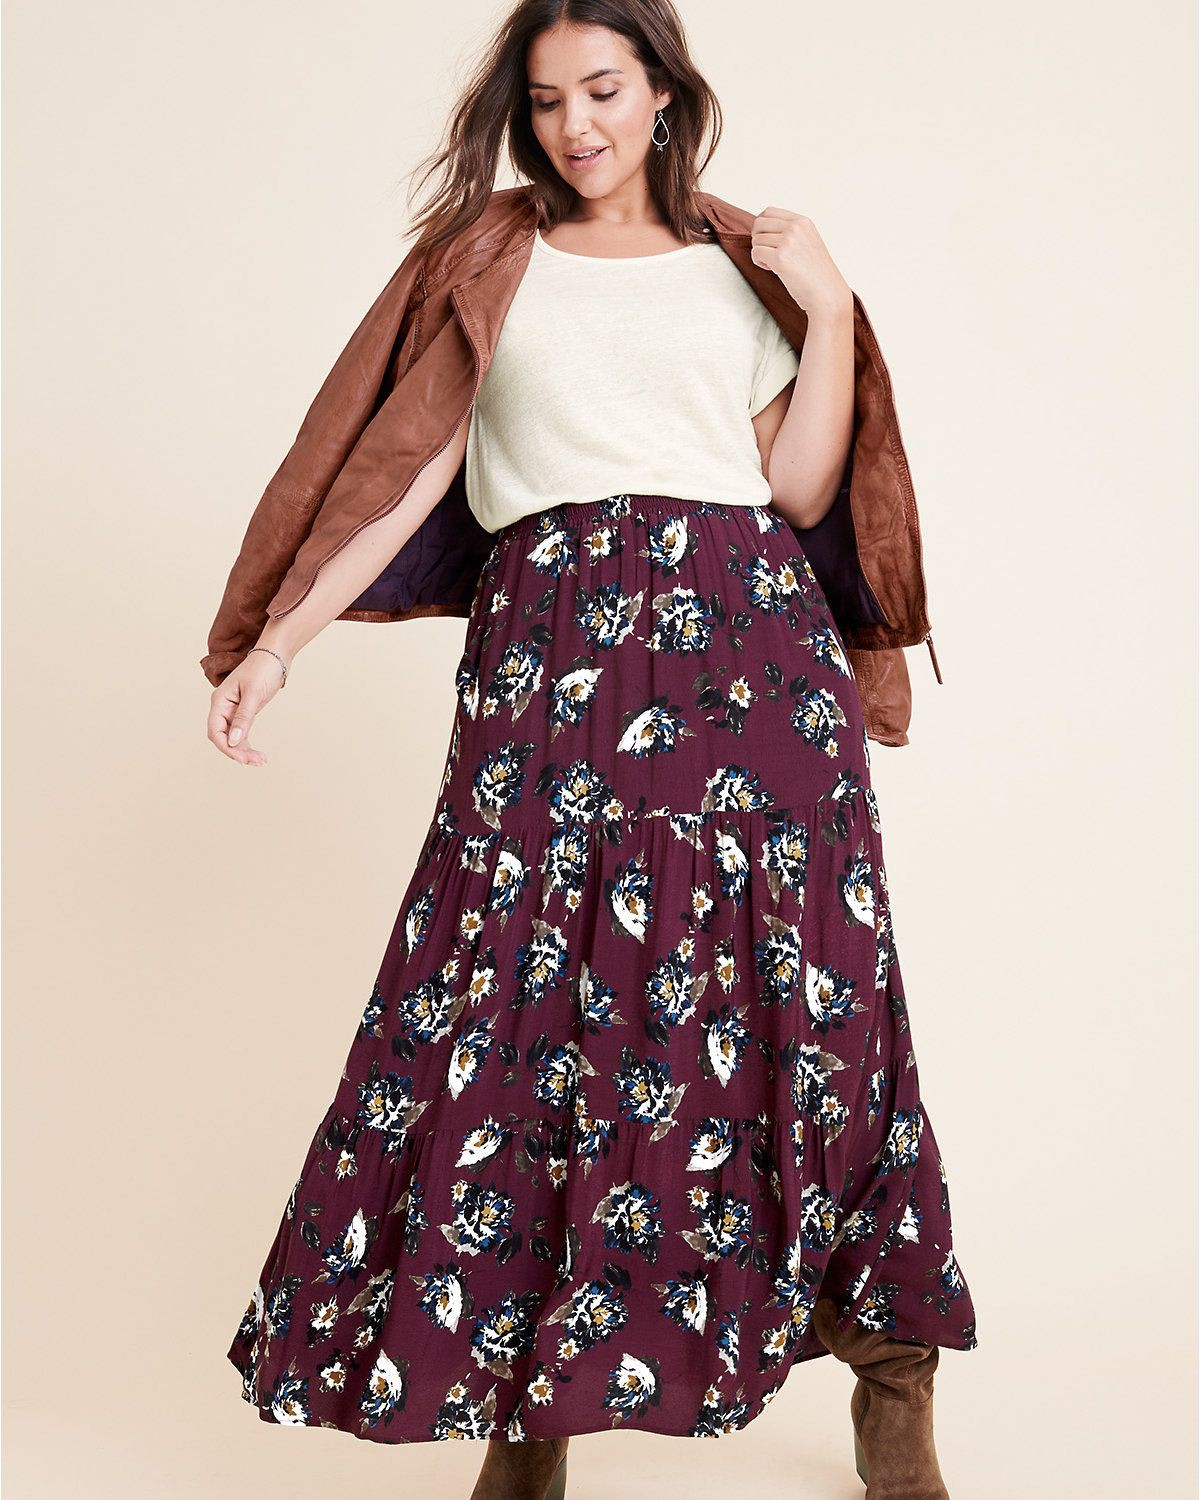 Maroon and brown outfit ideas with day dress, skirt, top